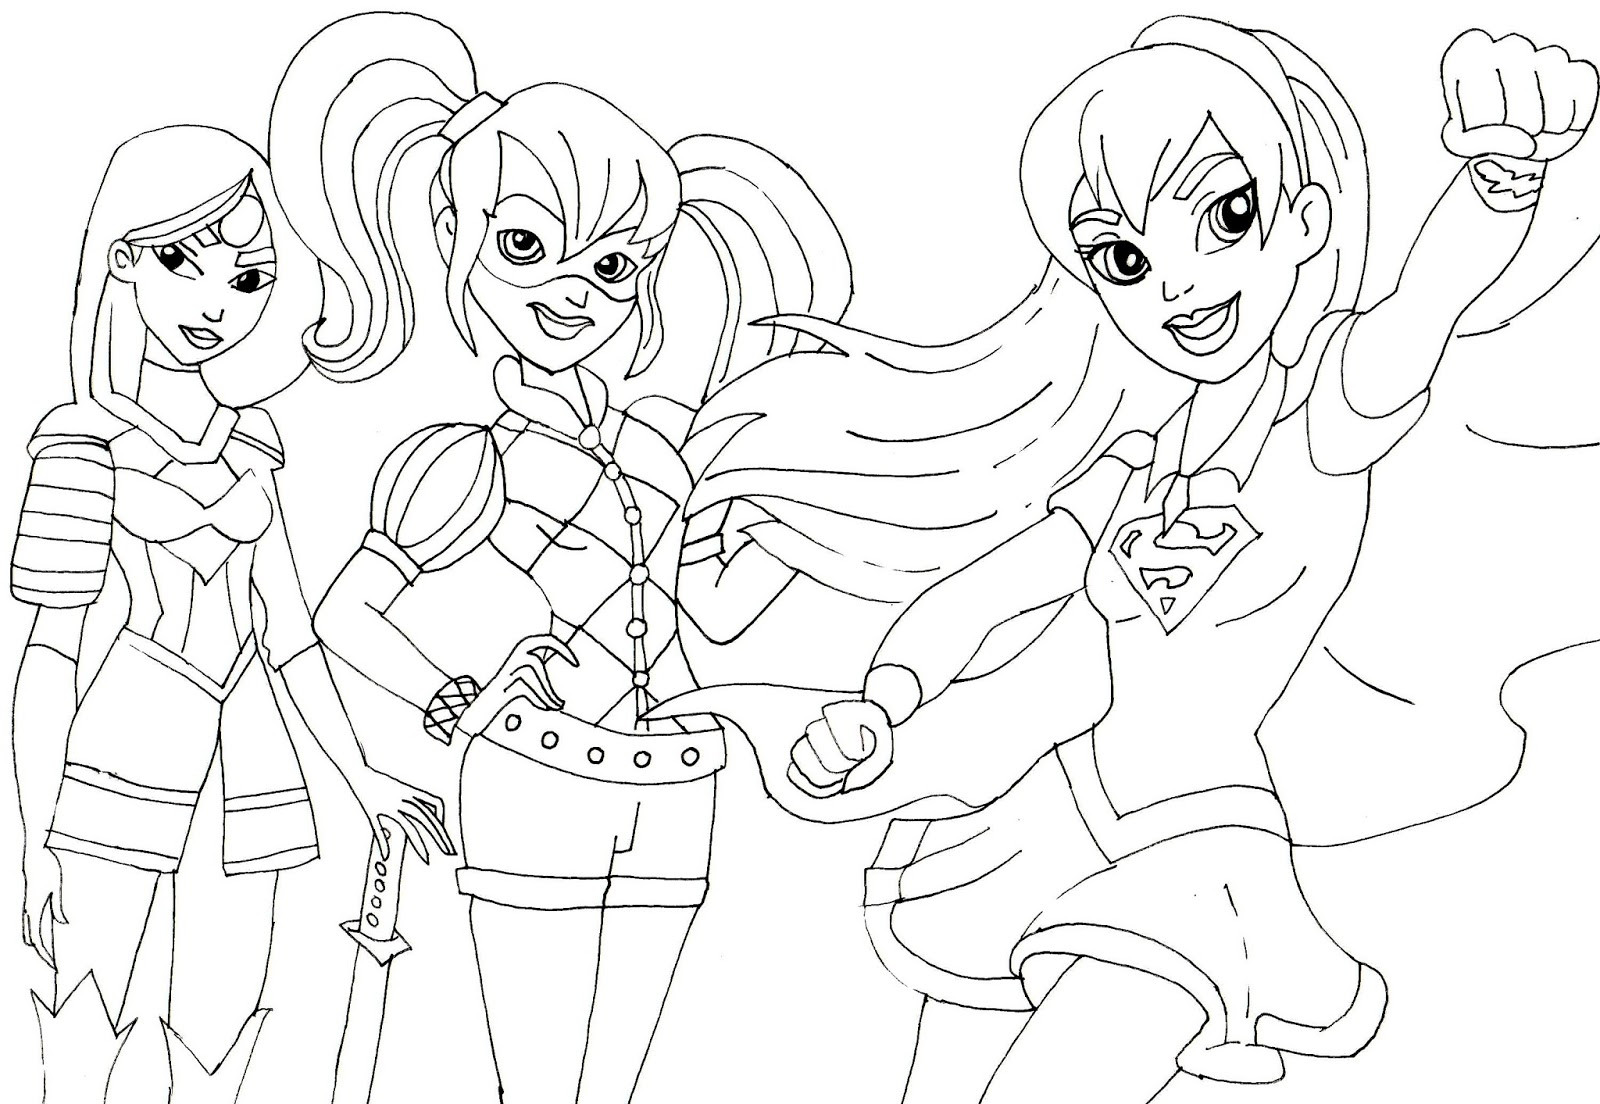 The Best Ideas for Super Hero Girls Coloring Pages - Home ...